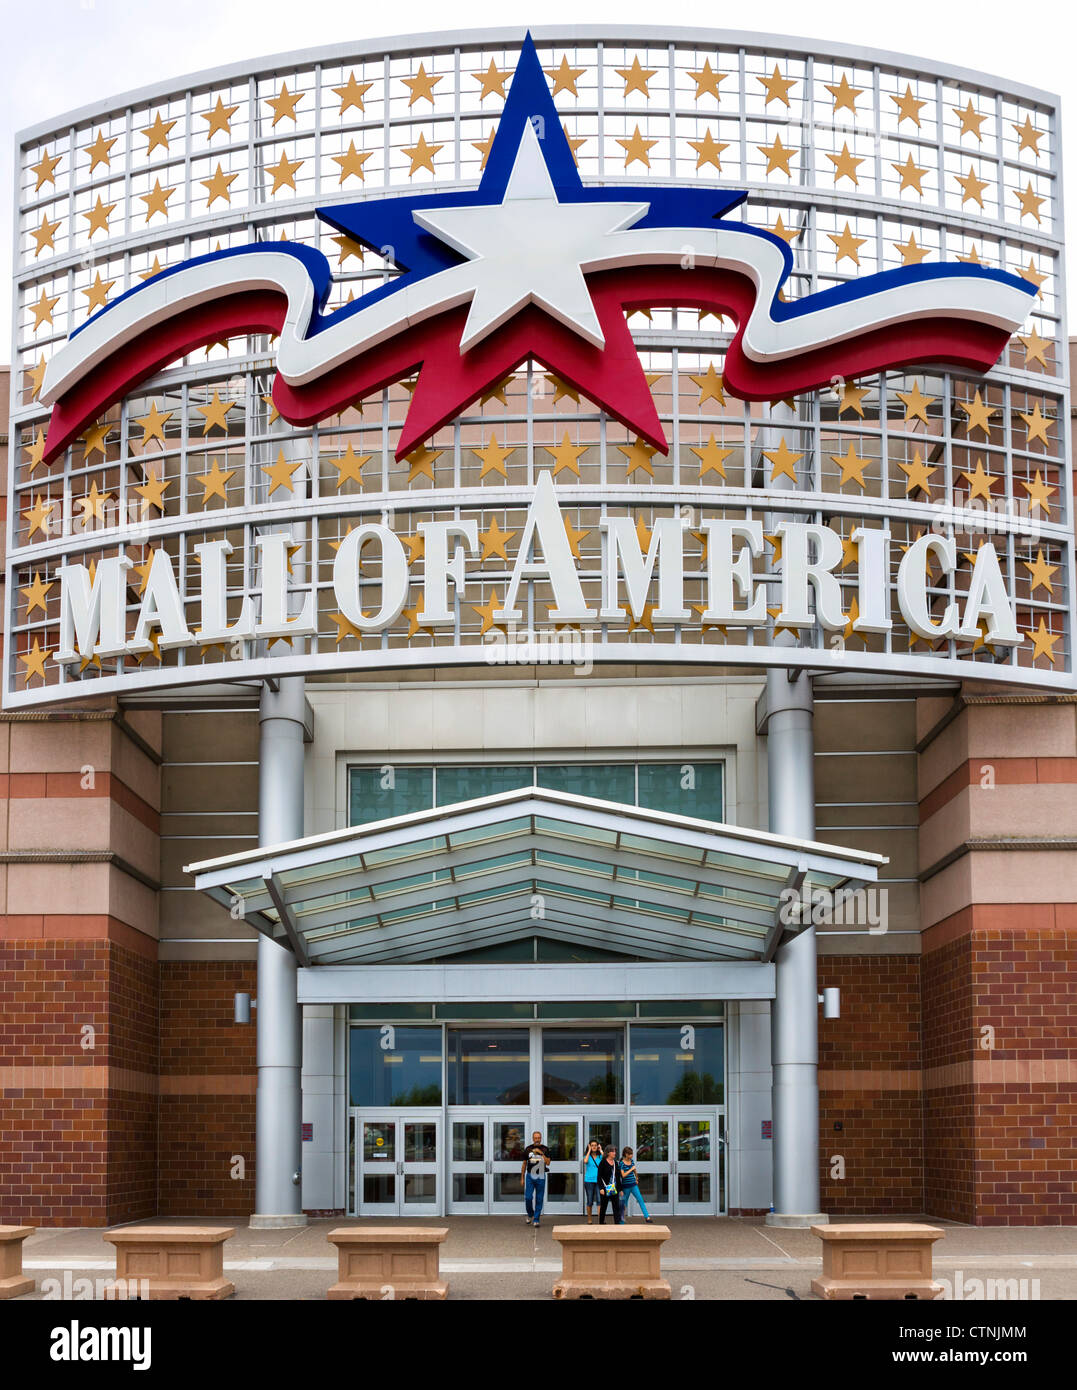 Entrance to the Mall of America, Bloomington, Minneapolis, Minnesota, USA - Stock Image